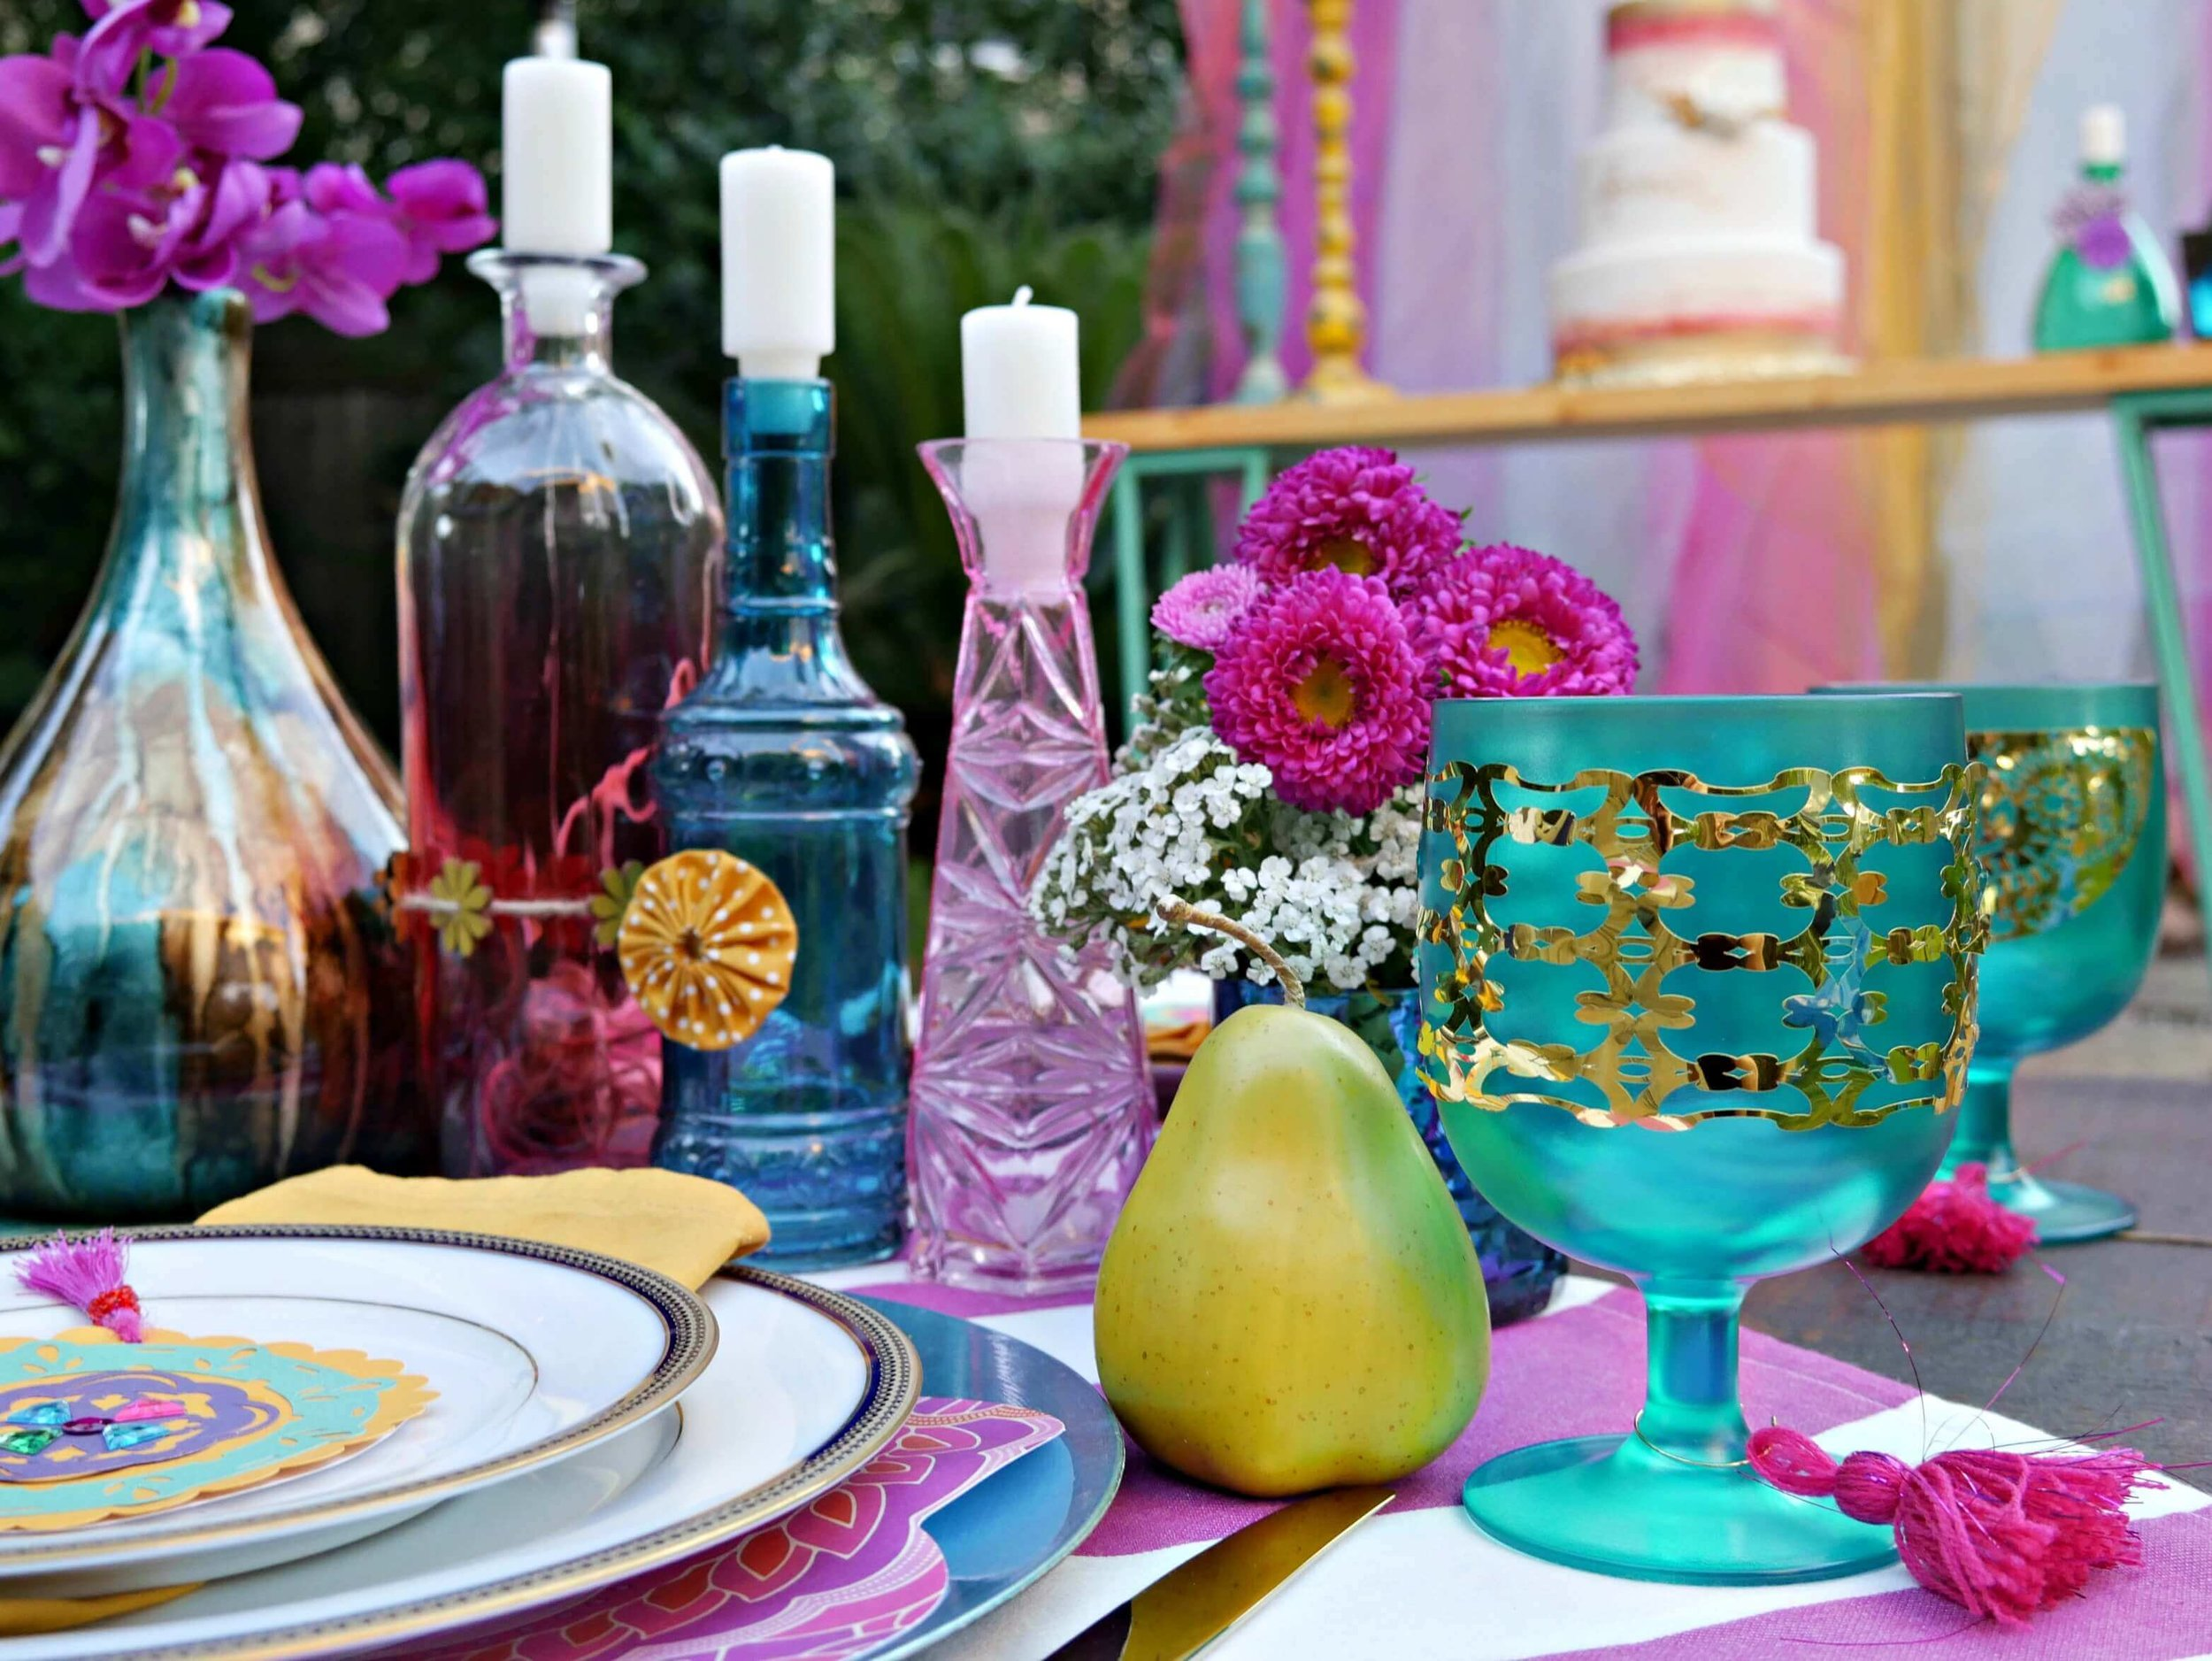 Gypsy inspired party ideas that are bold and beautiful. Styled by Mint Event Design www.minteventdesign.com #tablesetting #tablescapes #bohochic #engagementparty